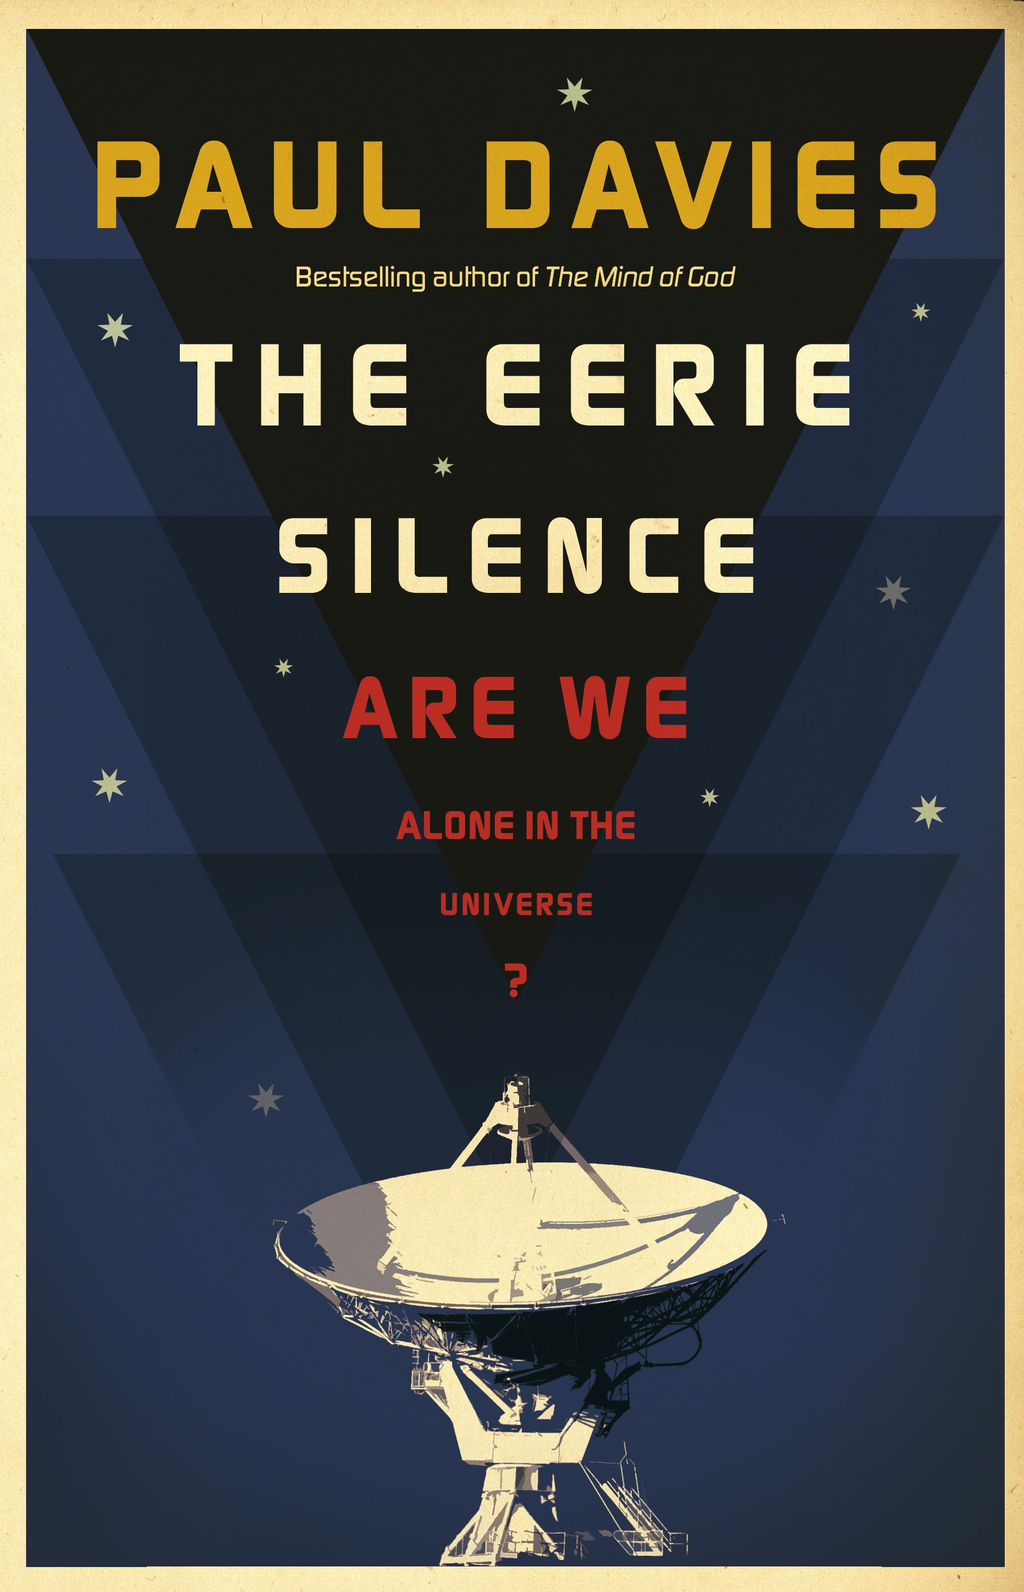 The Eerie Silence Are We Alone in the Universe?